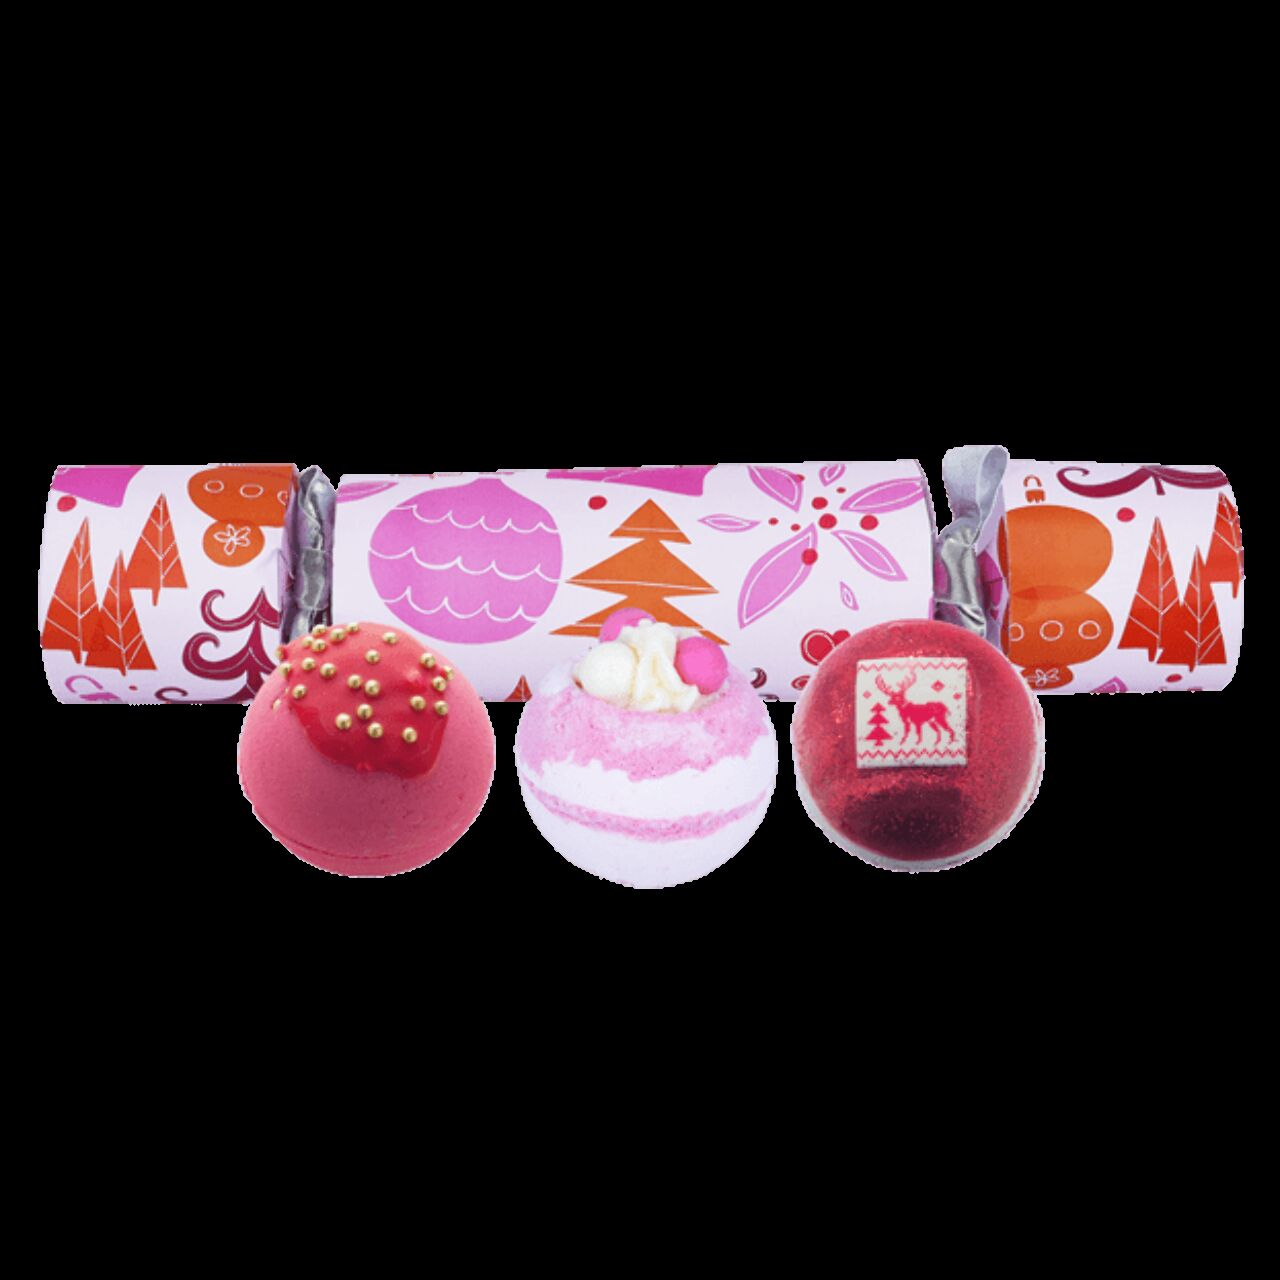 Bomb Cosmetics We Wish You a Rosy Christmas Cracker Gift Pack